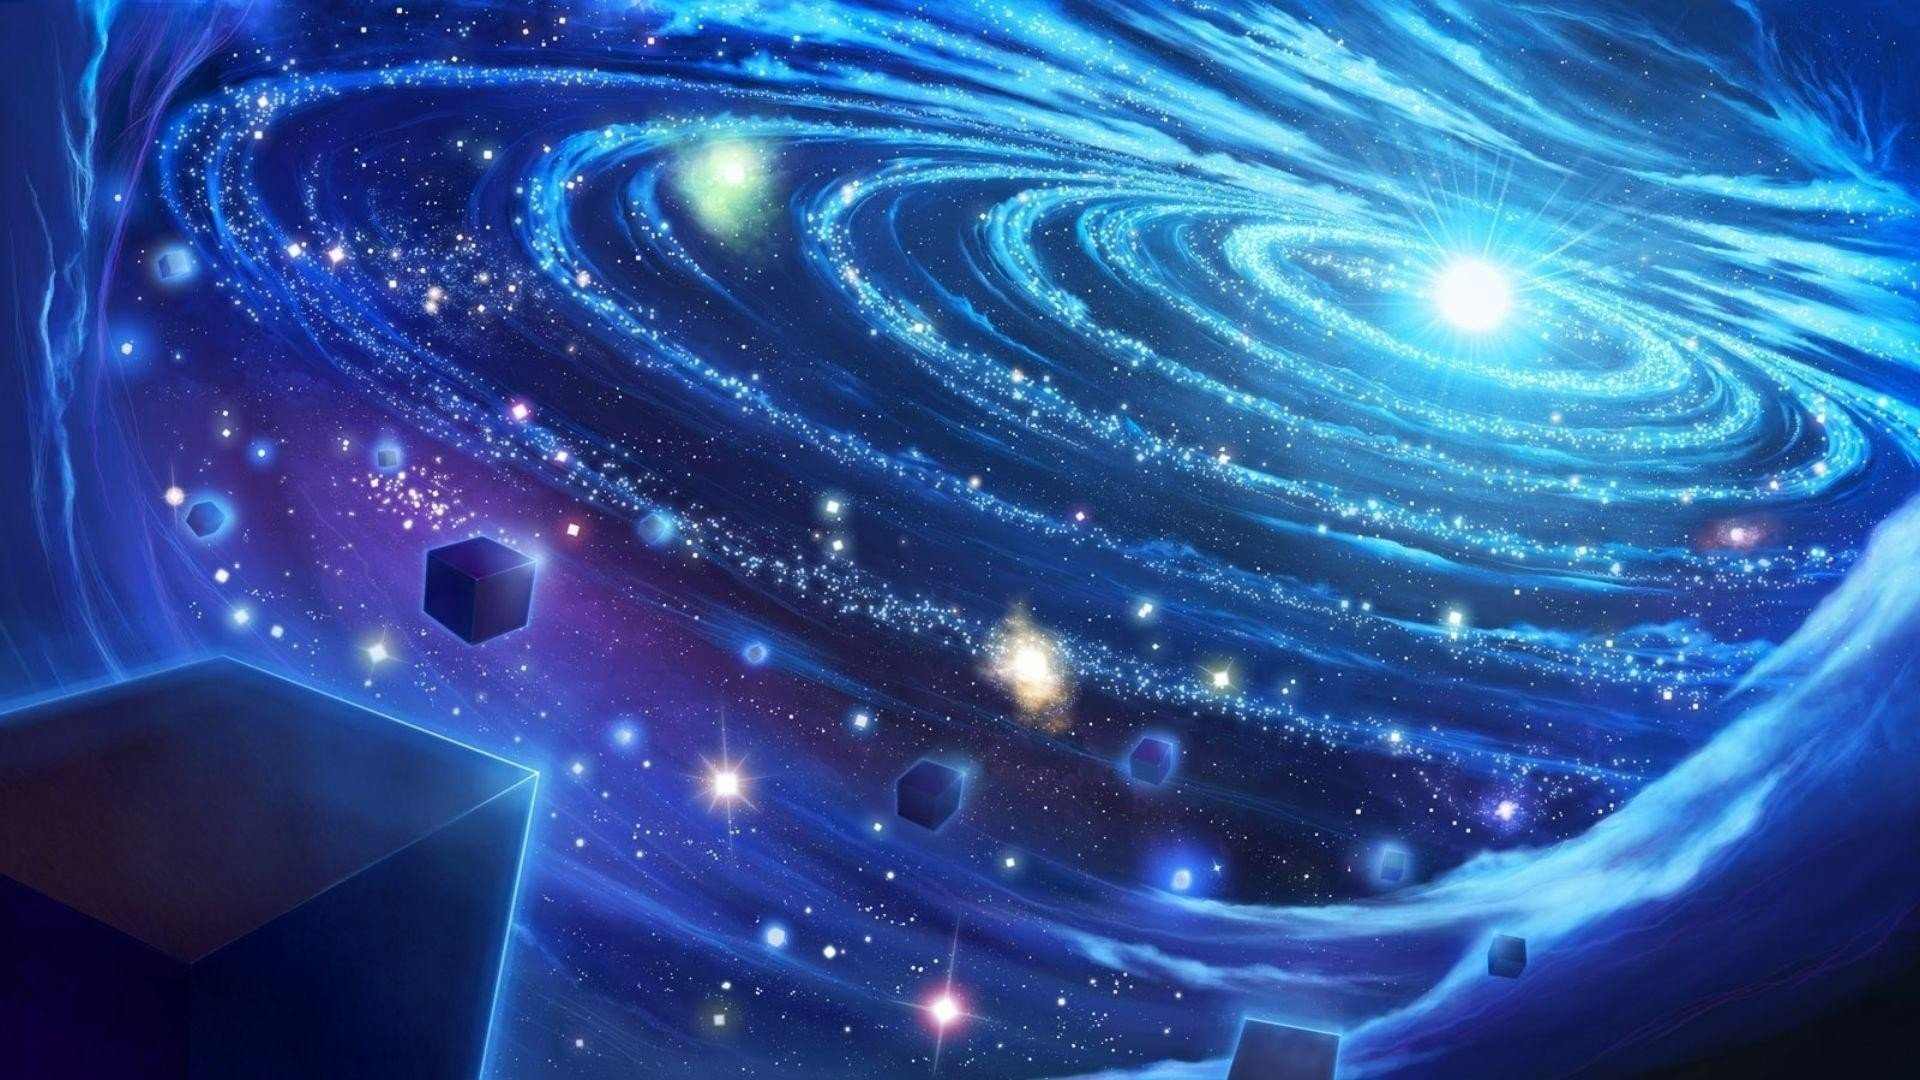 75 Blue Galaxy Wallpapers on WallpaperPlay 1920x1080